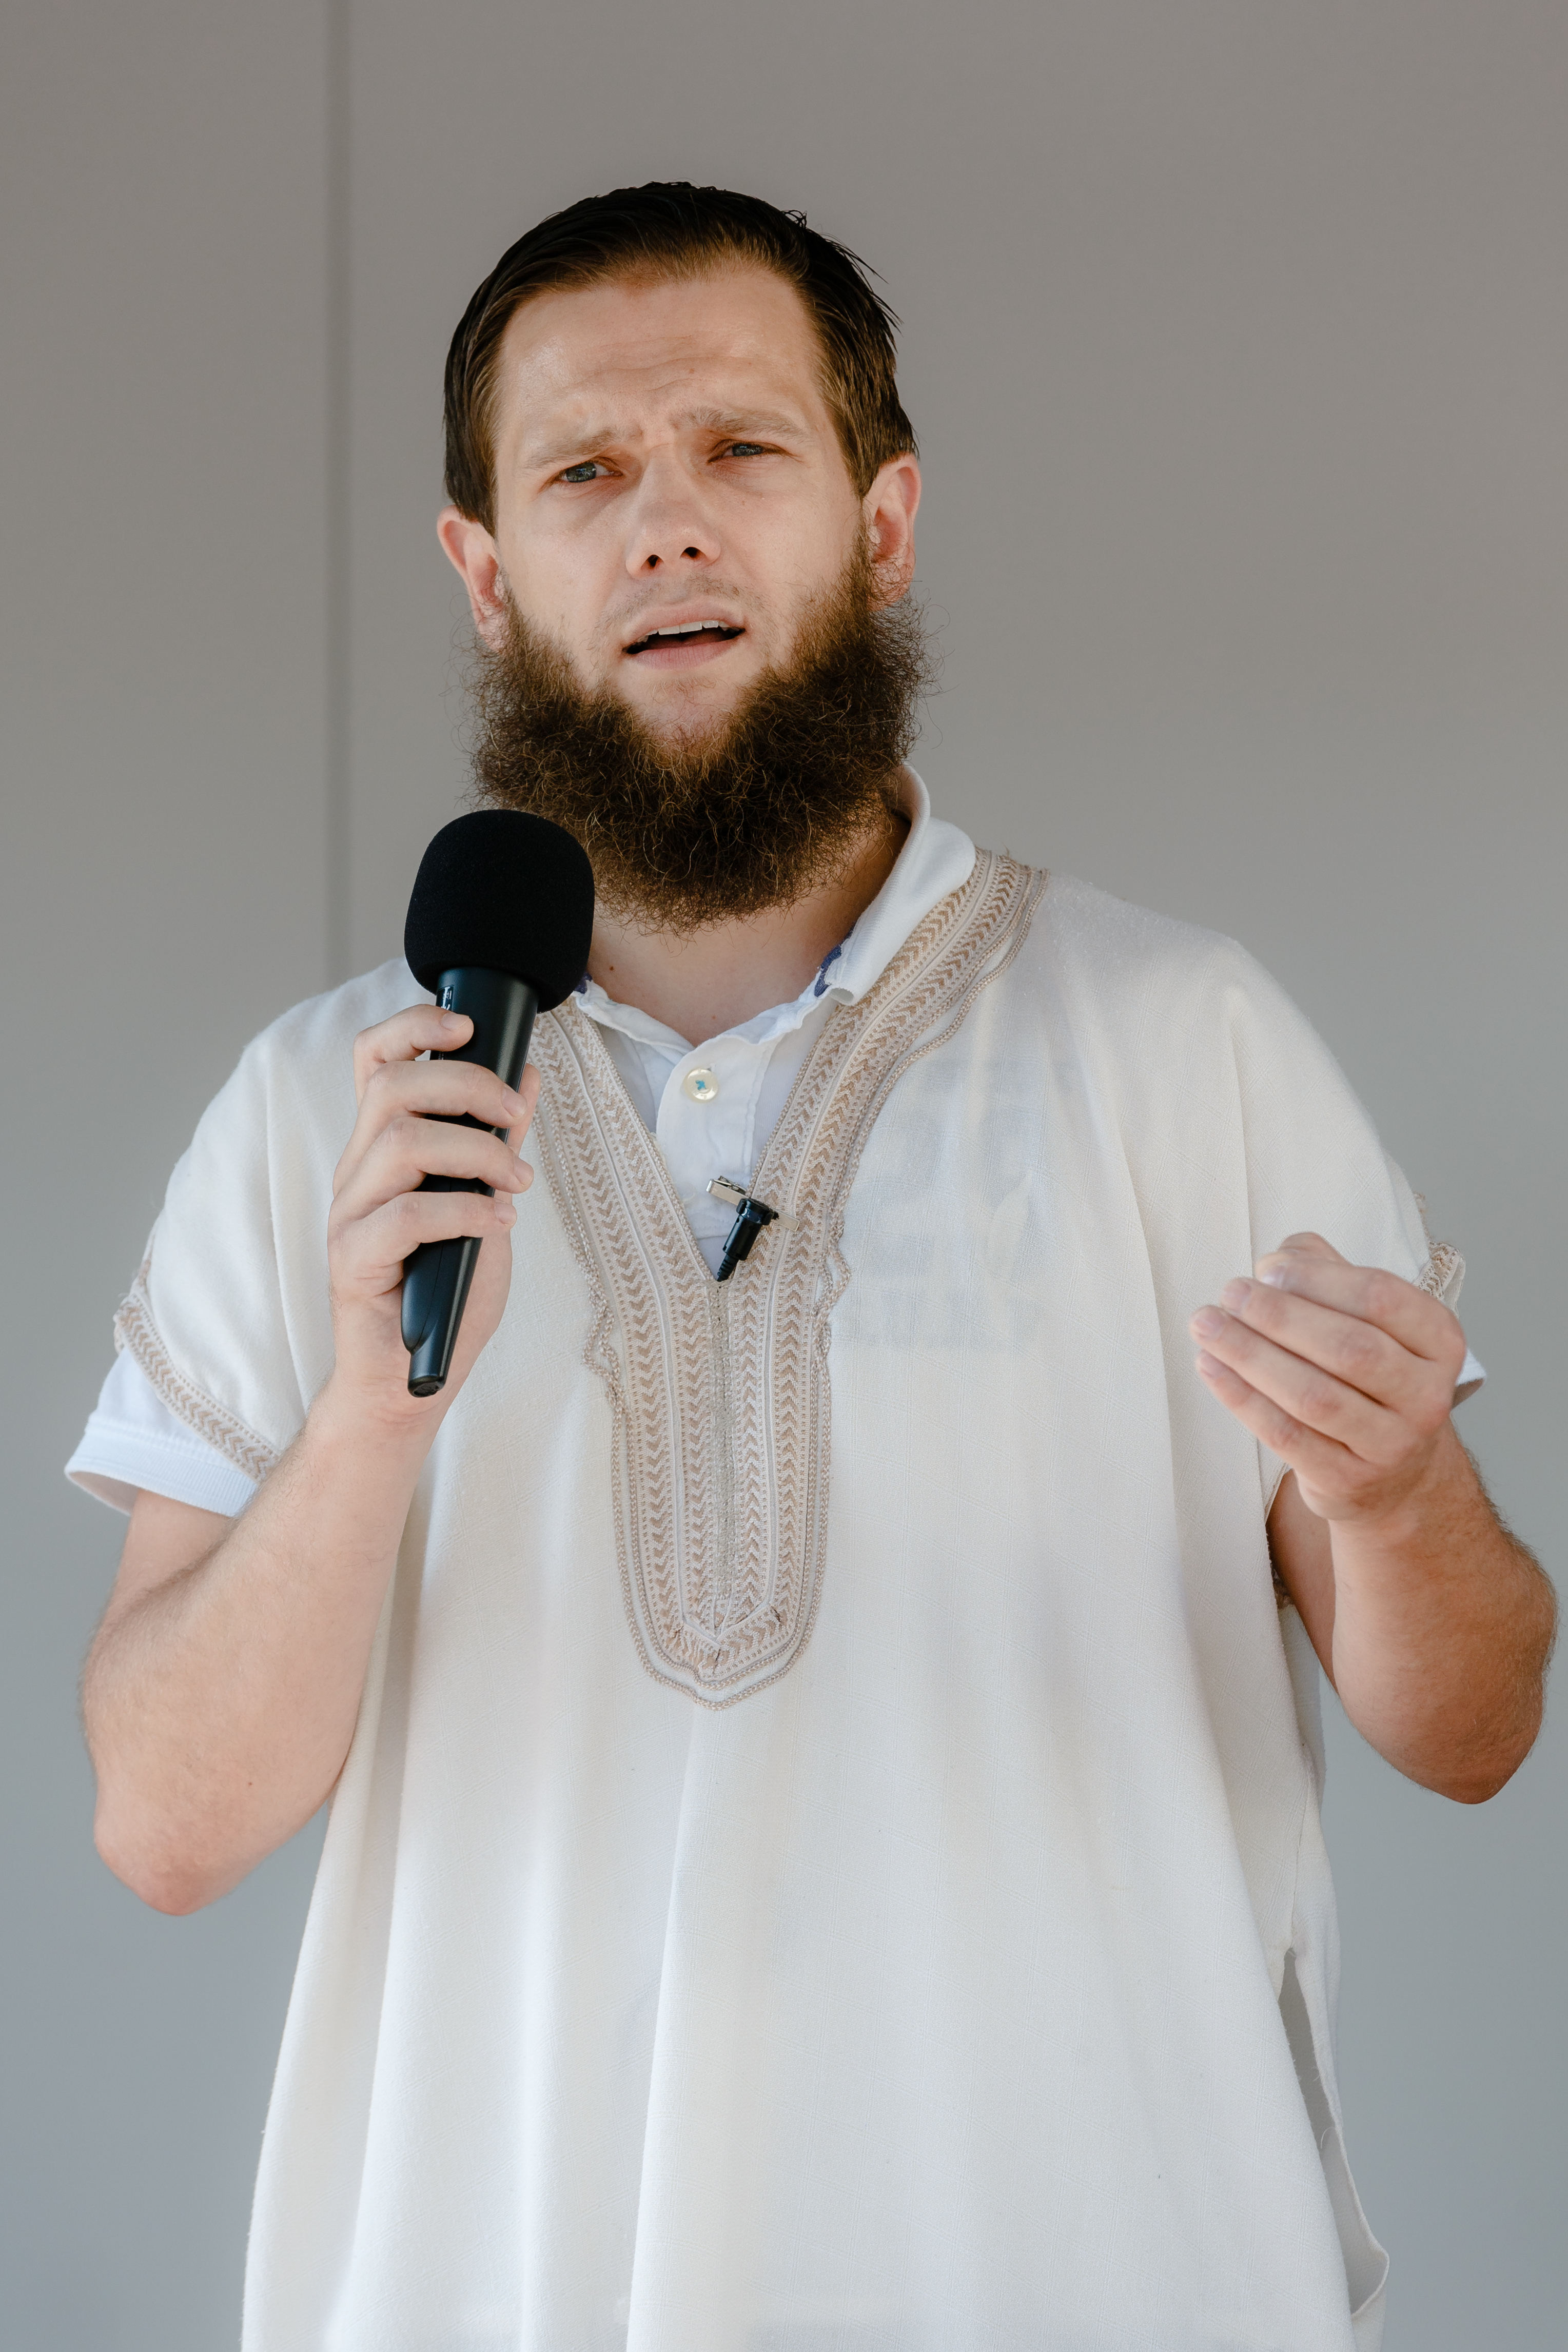 FILE - In this July 19, 2014 file photo Sven Lau speaks during a rally in Hamburg, northern Germany. Lau, one of Germany's most prominent Islamic extremists has been arrested Tuesday, Dec. 15, 2015. Photo: AP